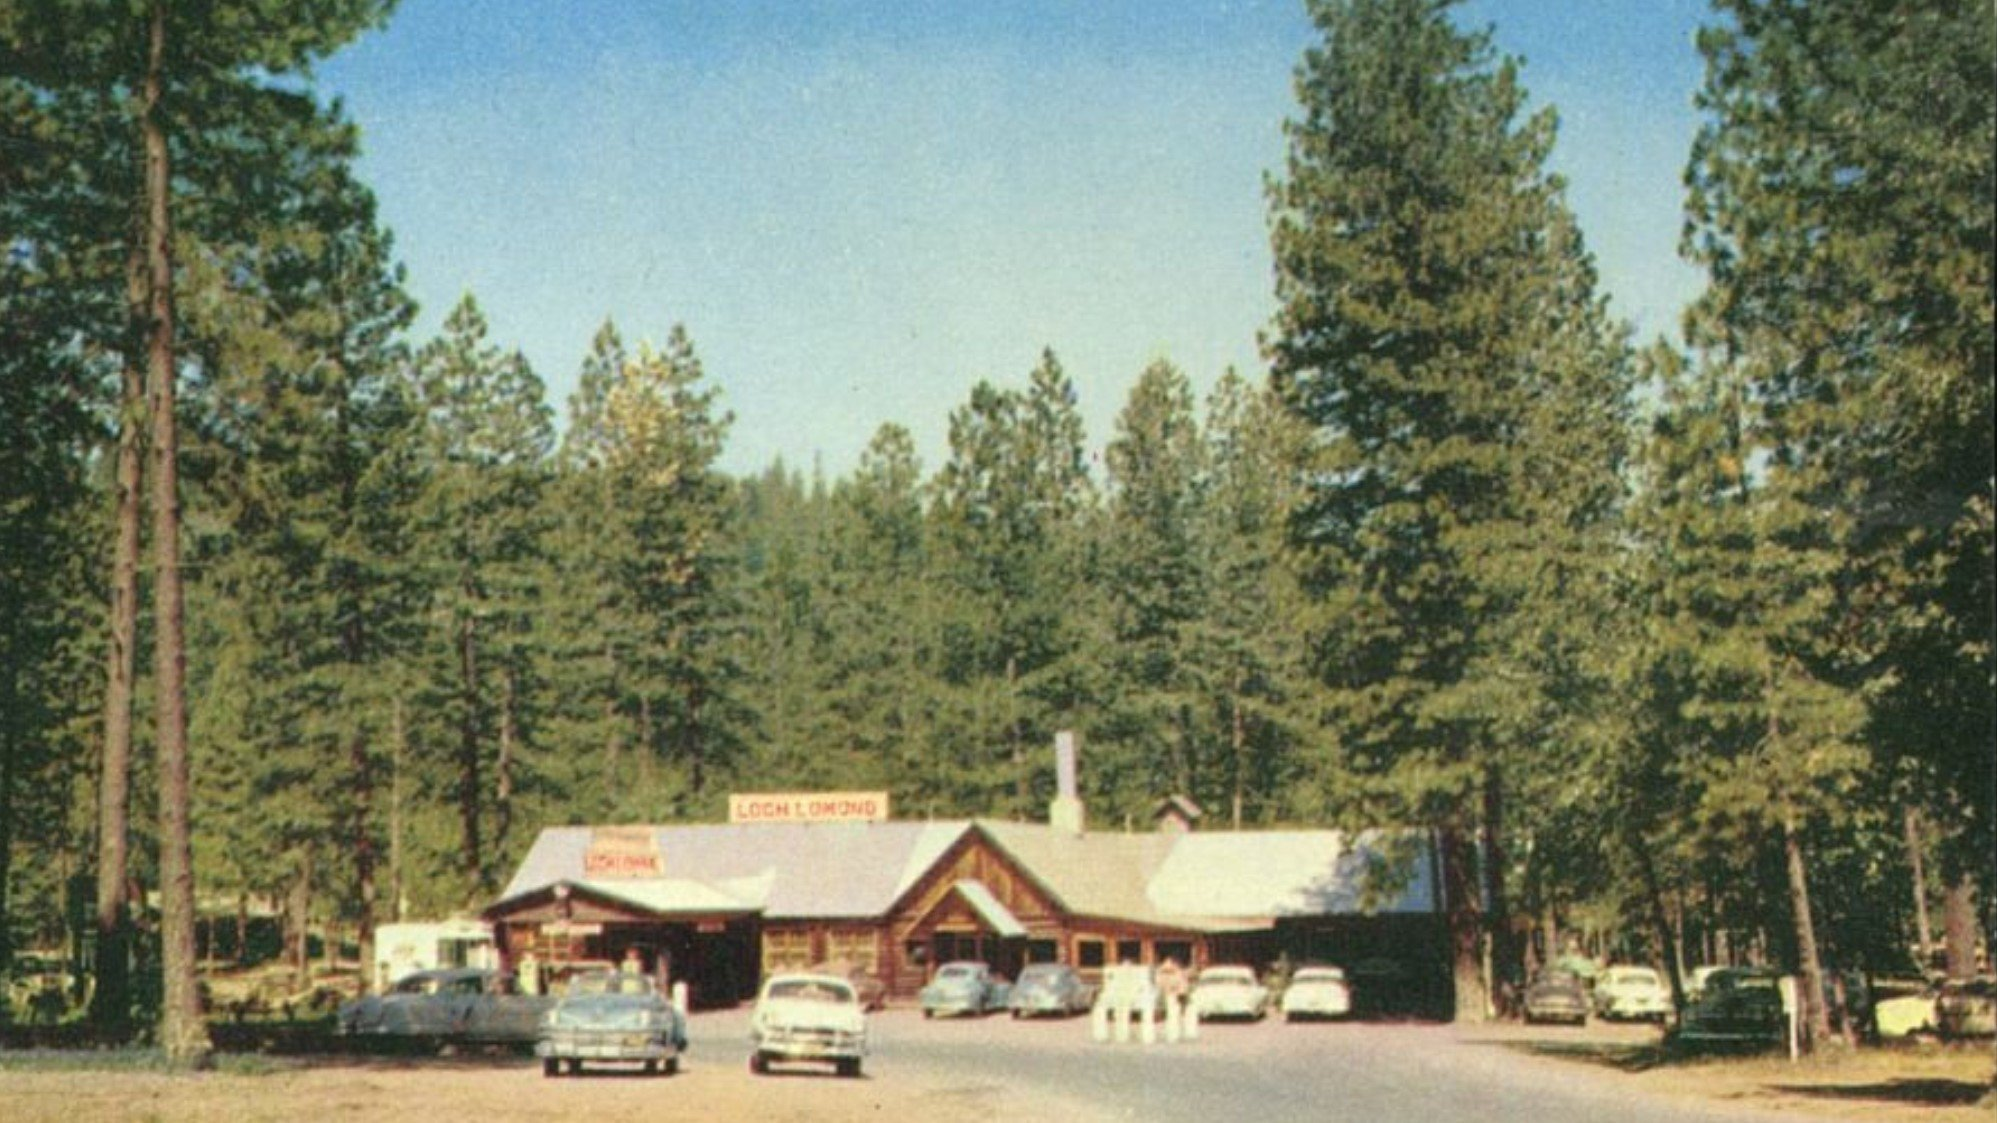 Loch Lomond Resort in its heyday. Photo Courtesy Douglas Prather.